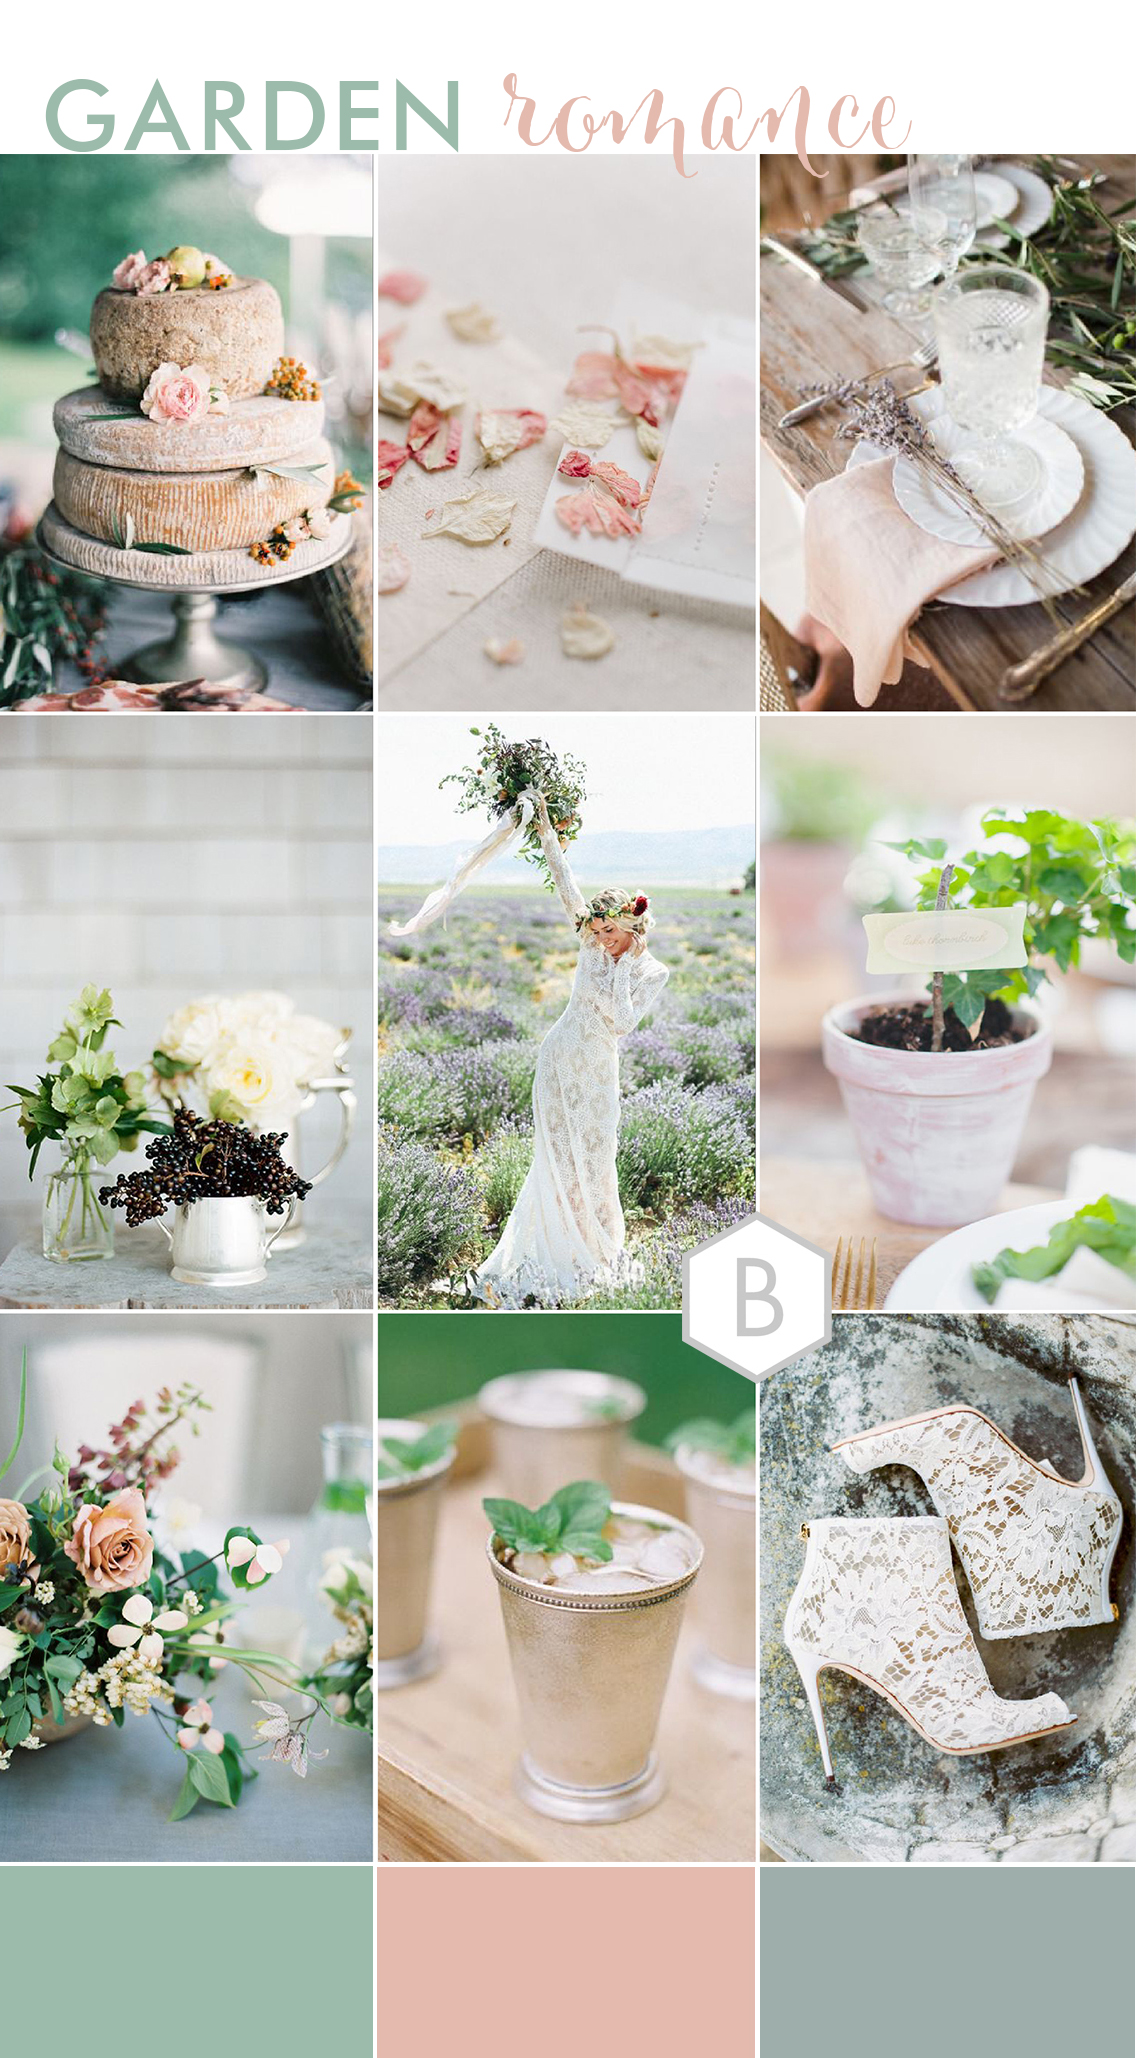 bloved-wedding-blog-sage-blush-garden-wedding-inspiration